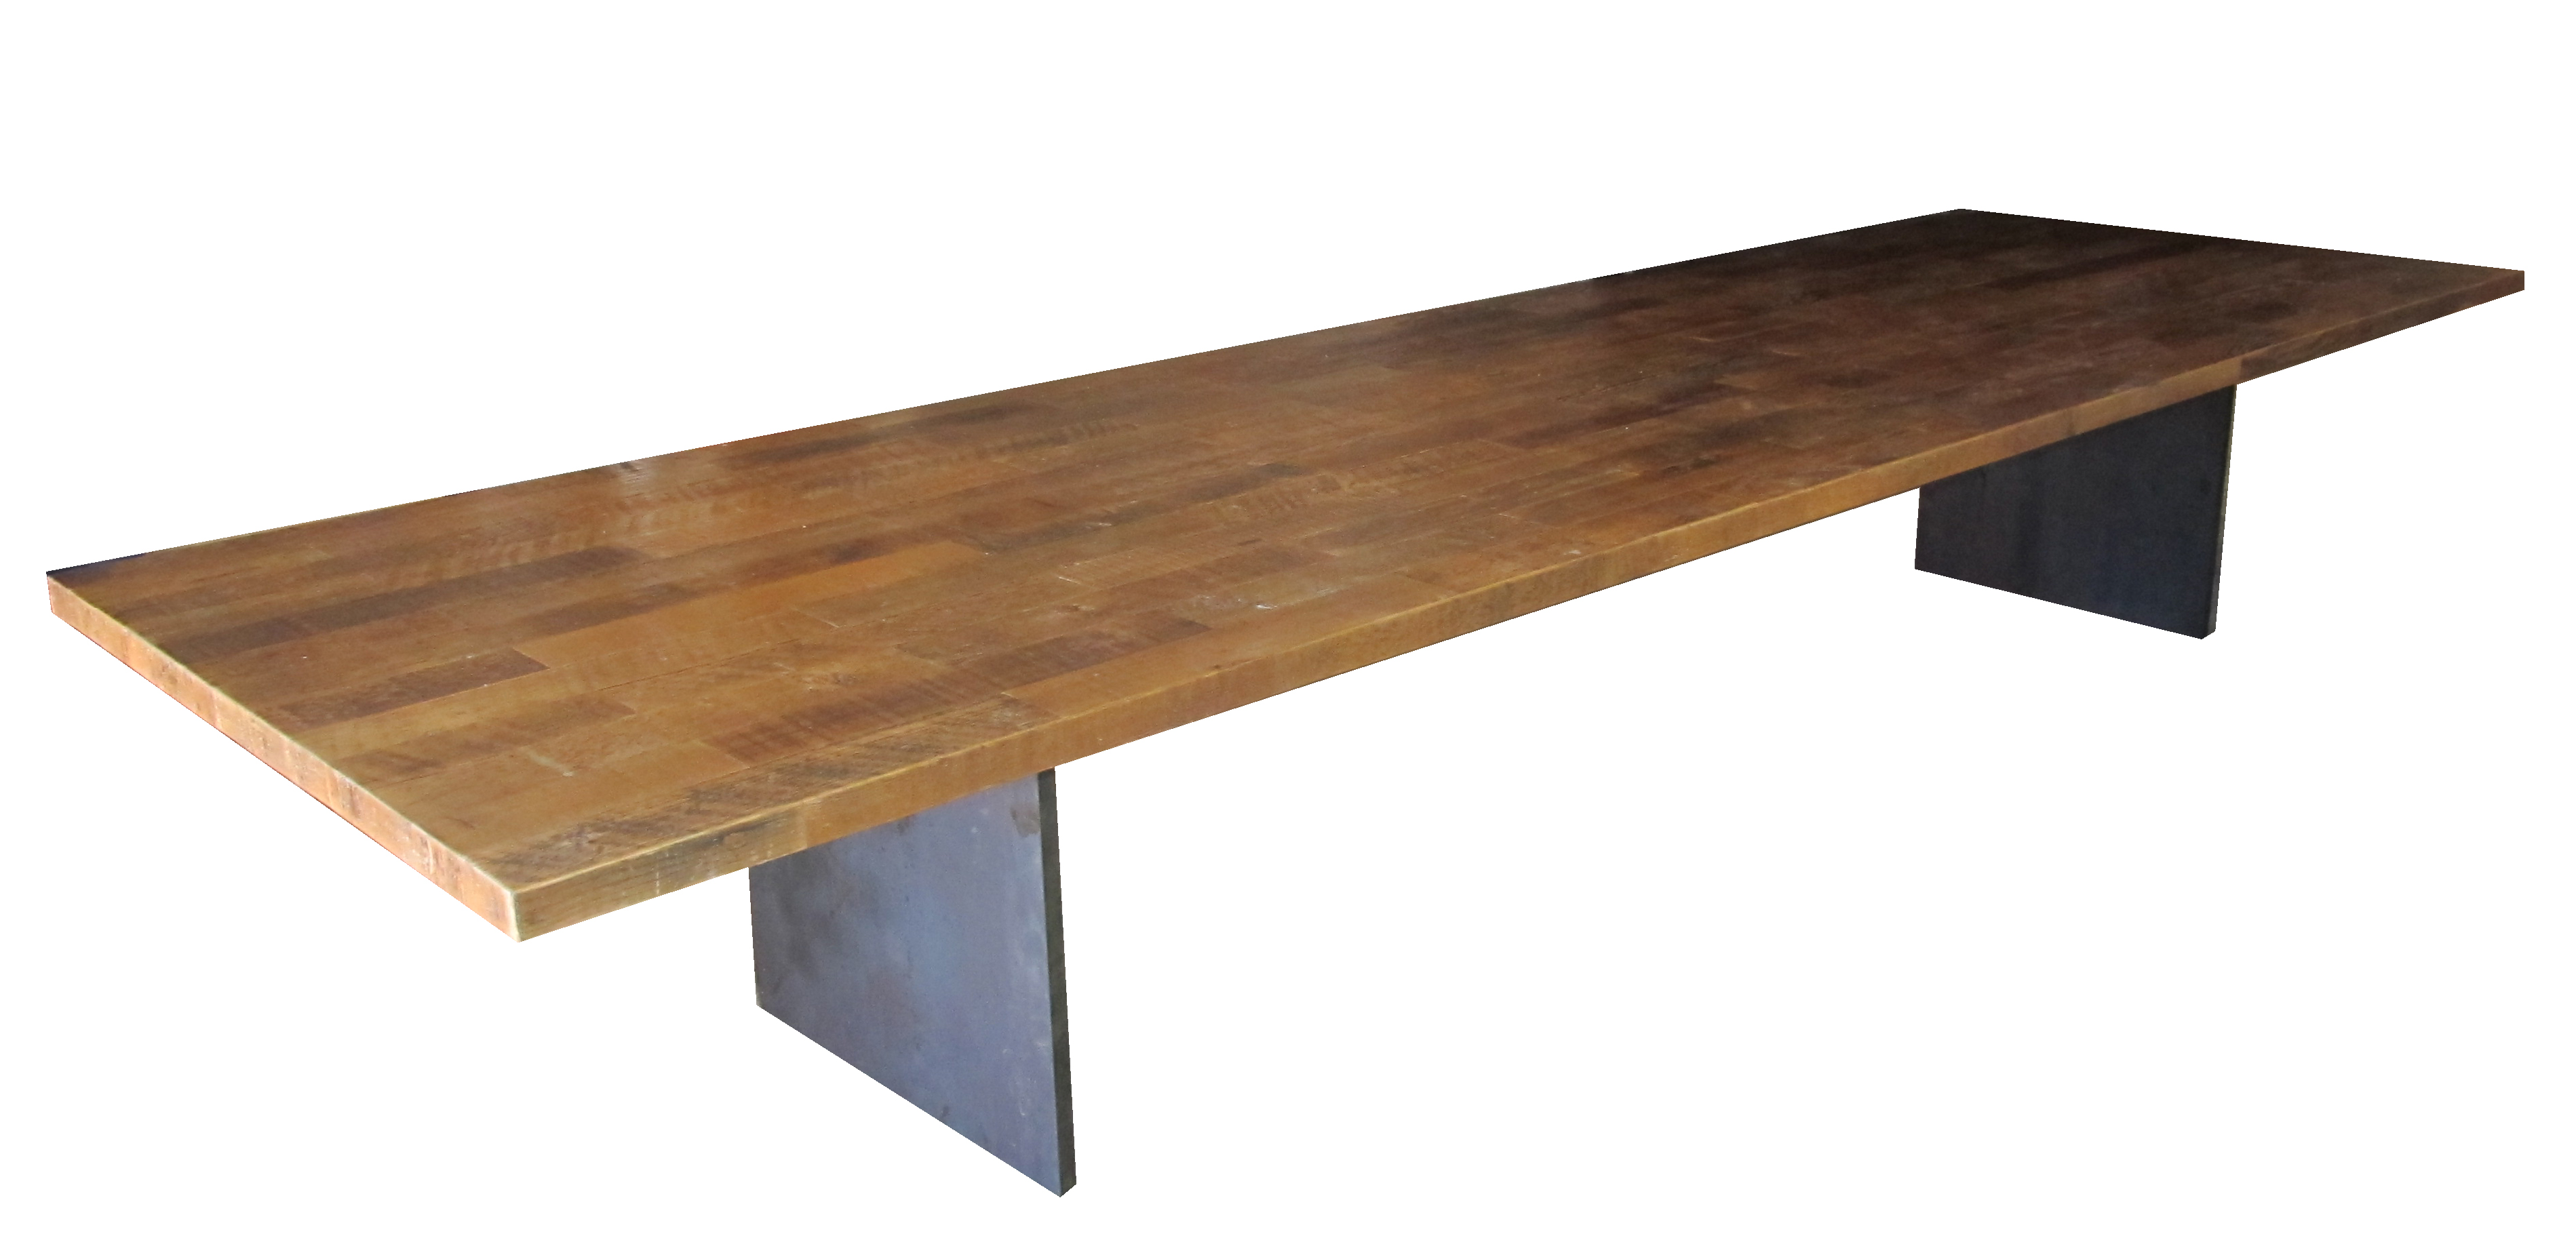 Industrial table  fifteen feet long with reclaimed wood top and steel base. Custom Industrial Table   Urban Woods